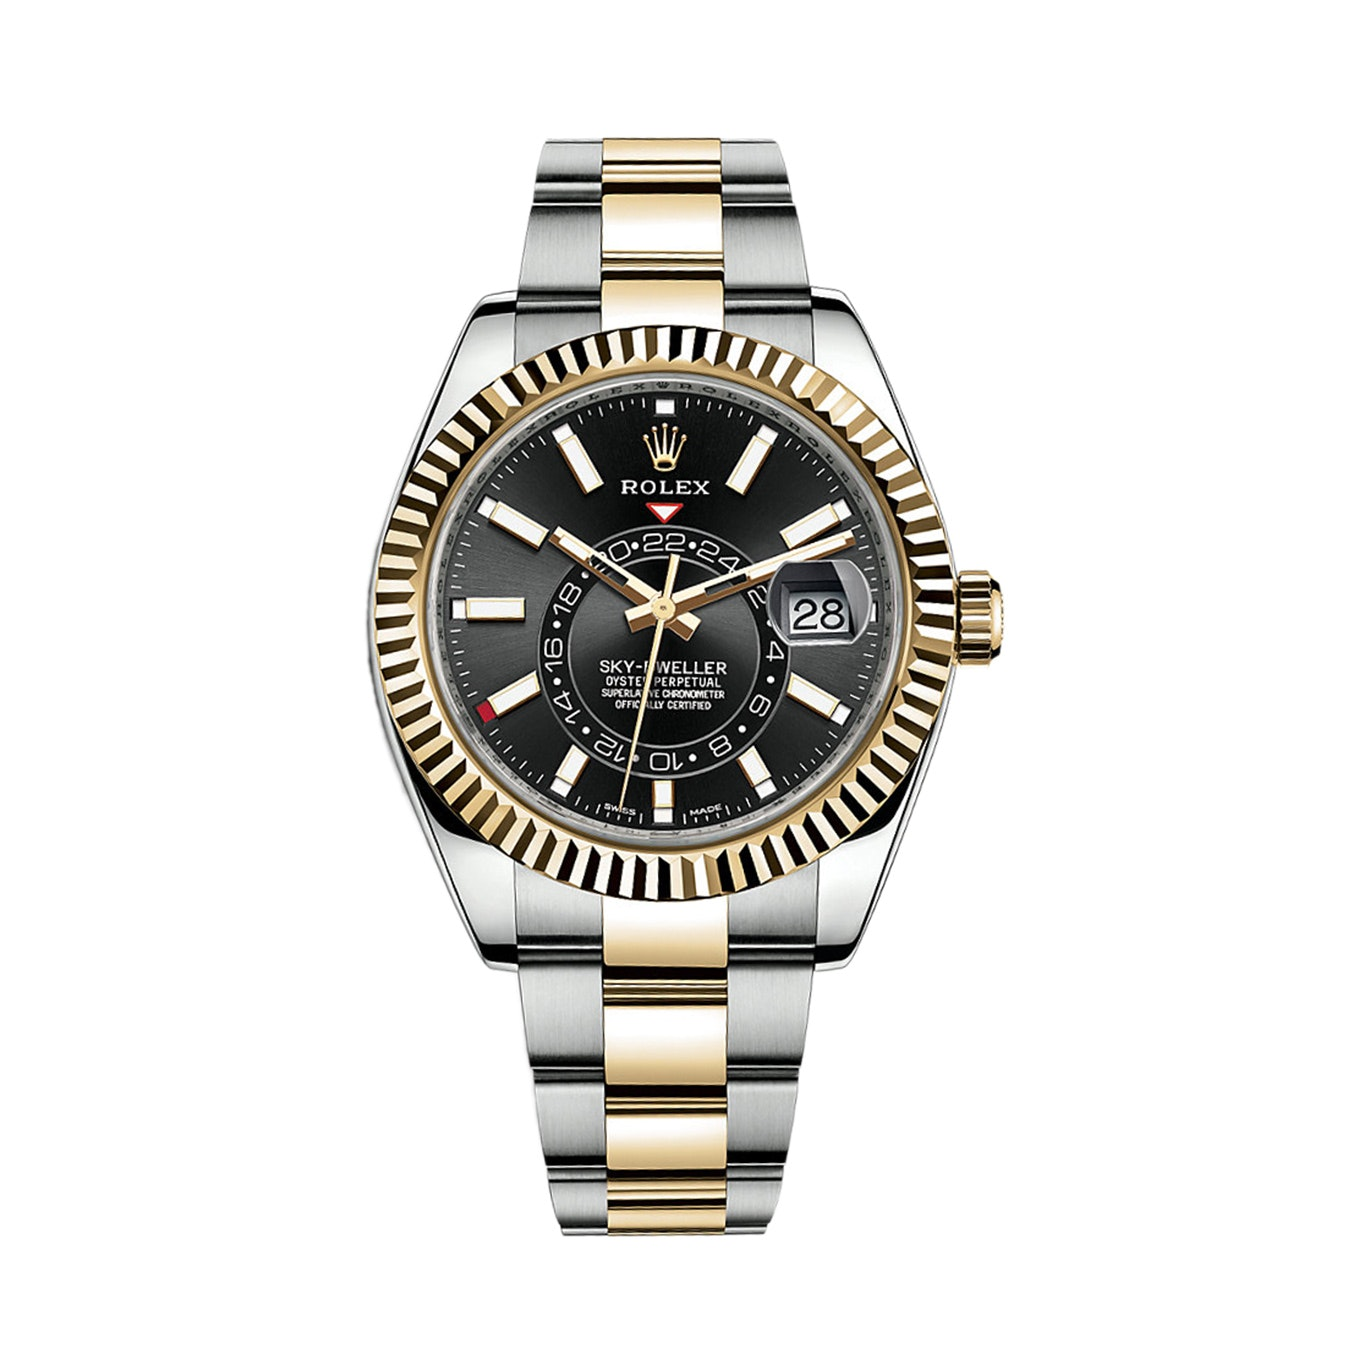 Authentic Rolex Sky,Dweller Watches , Buy \u0026 Sell